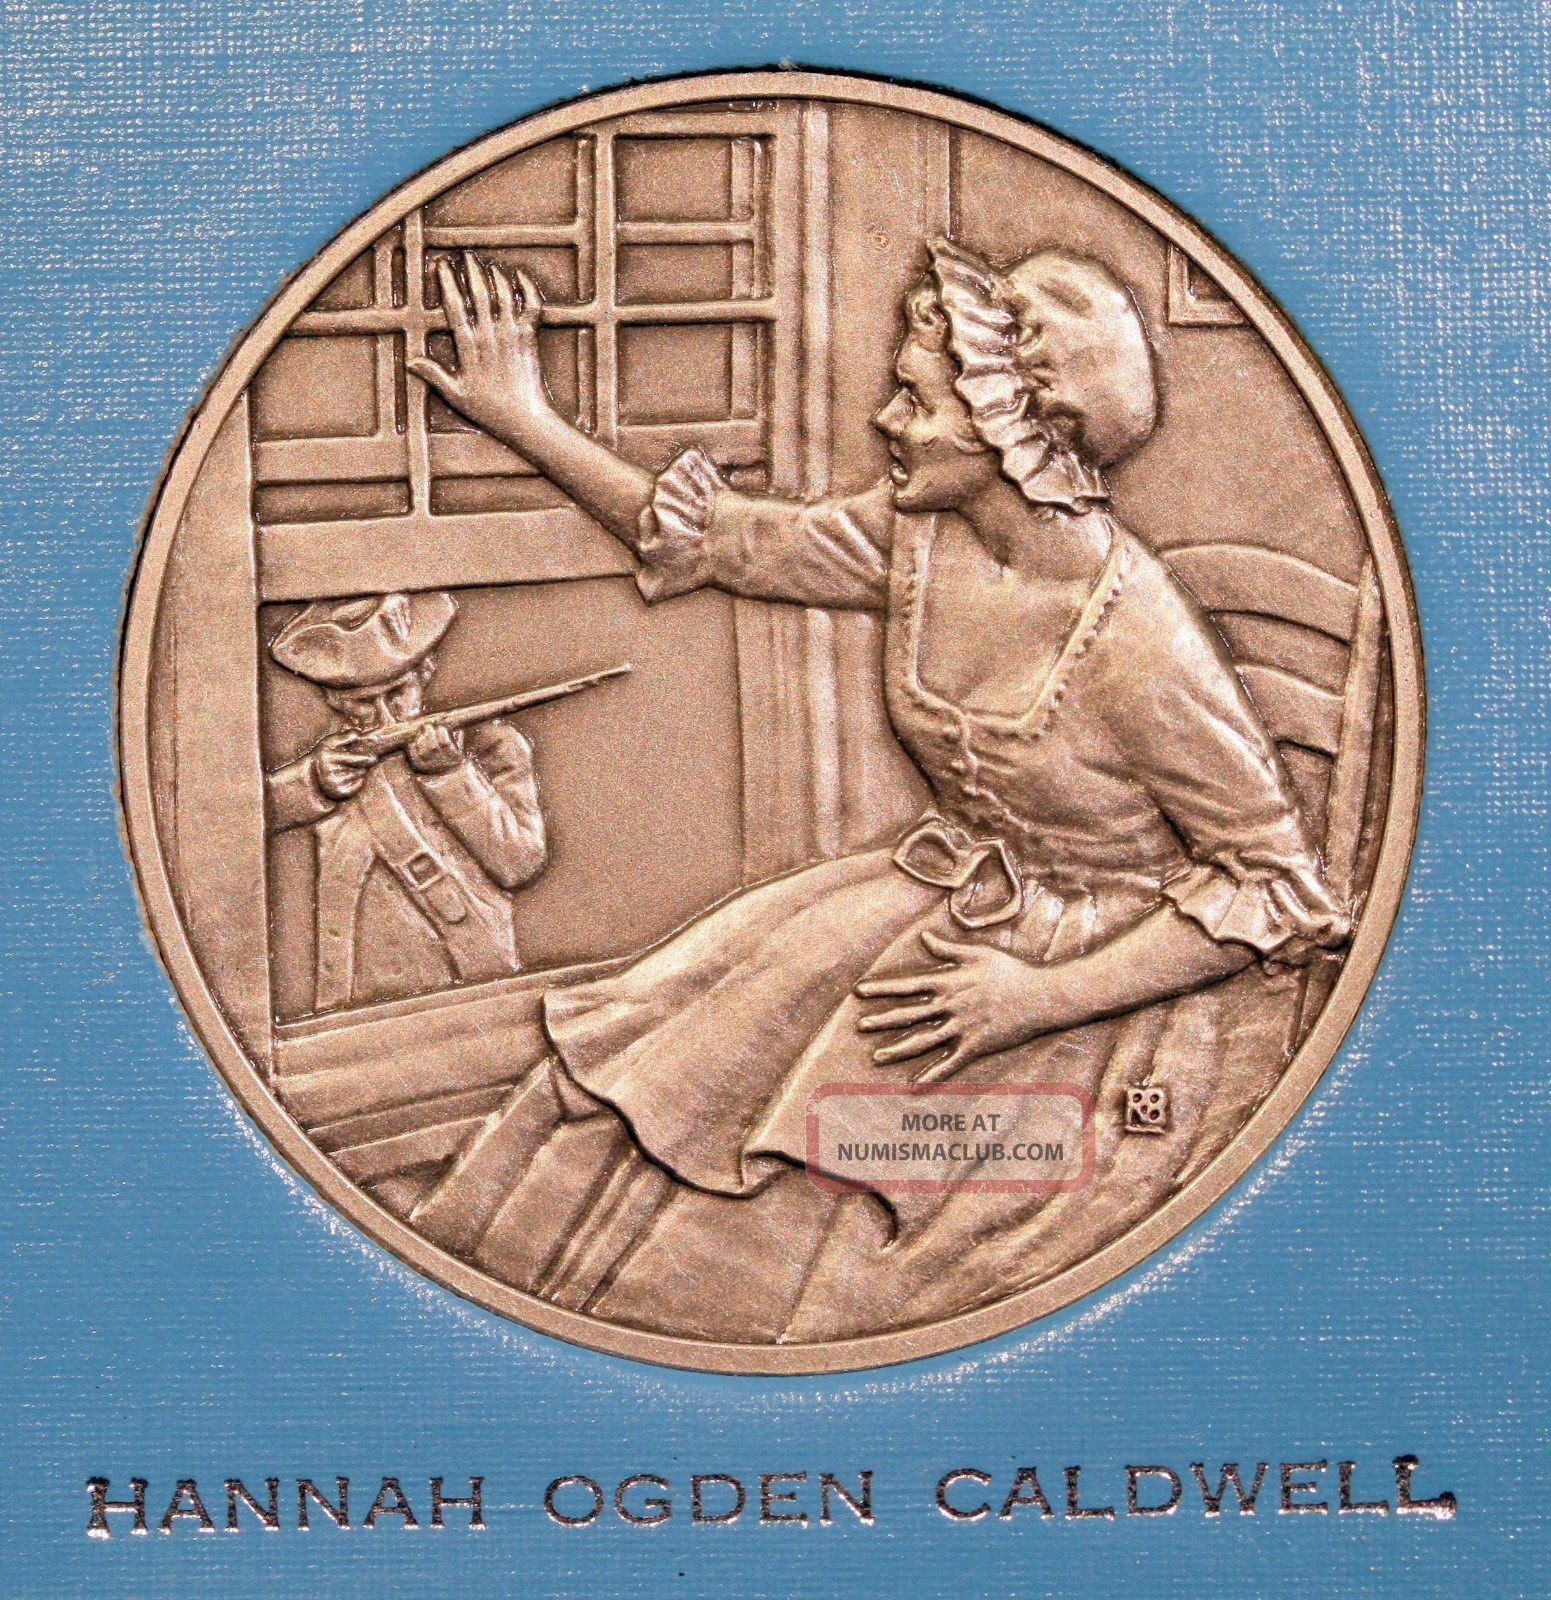 Dar Great Women Of The American Revolution Medal - Hannah Ogden Caldwell Exonumia photo